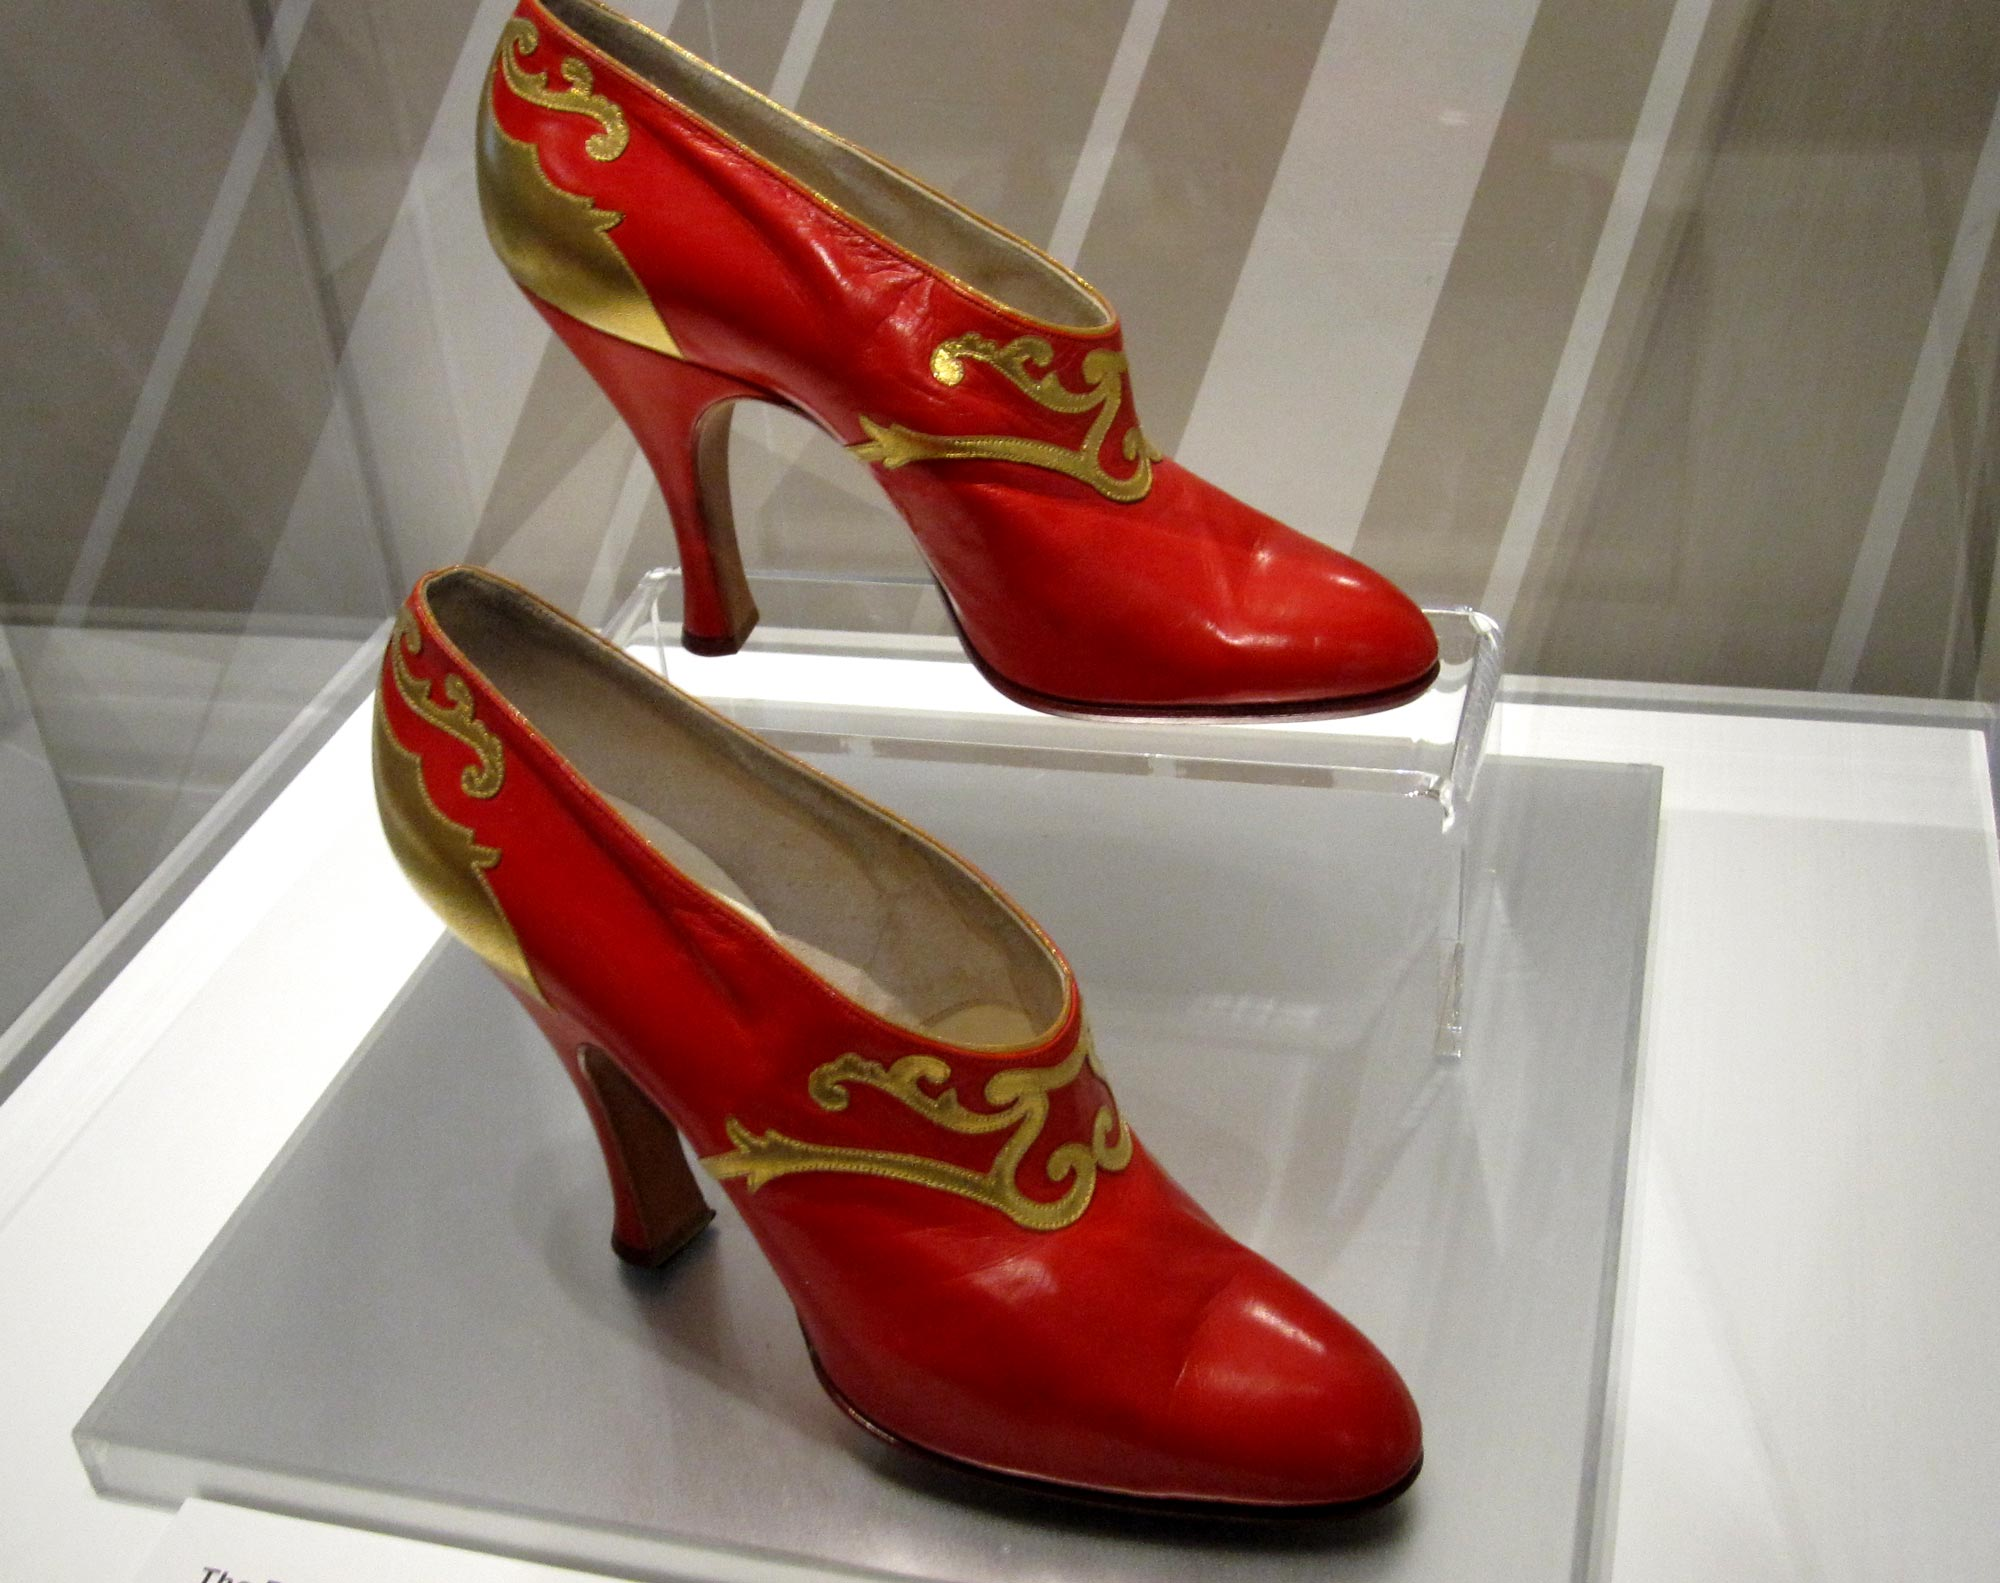 Here are some vintage inspired Art Deco and oxford style shoes..... taken from http://www.swingfashionista.com